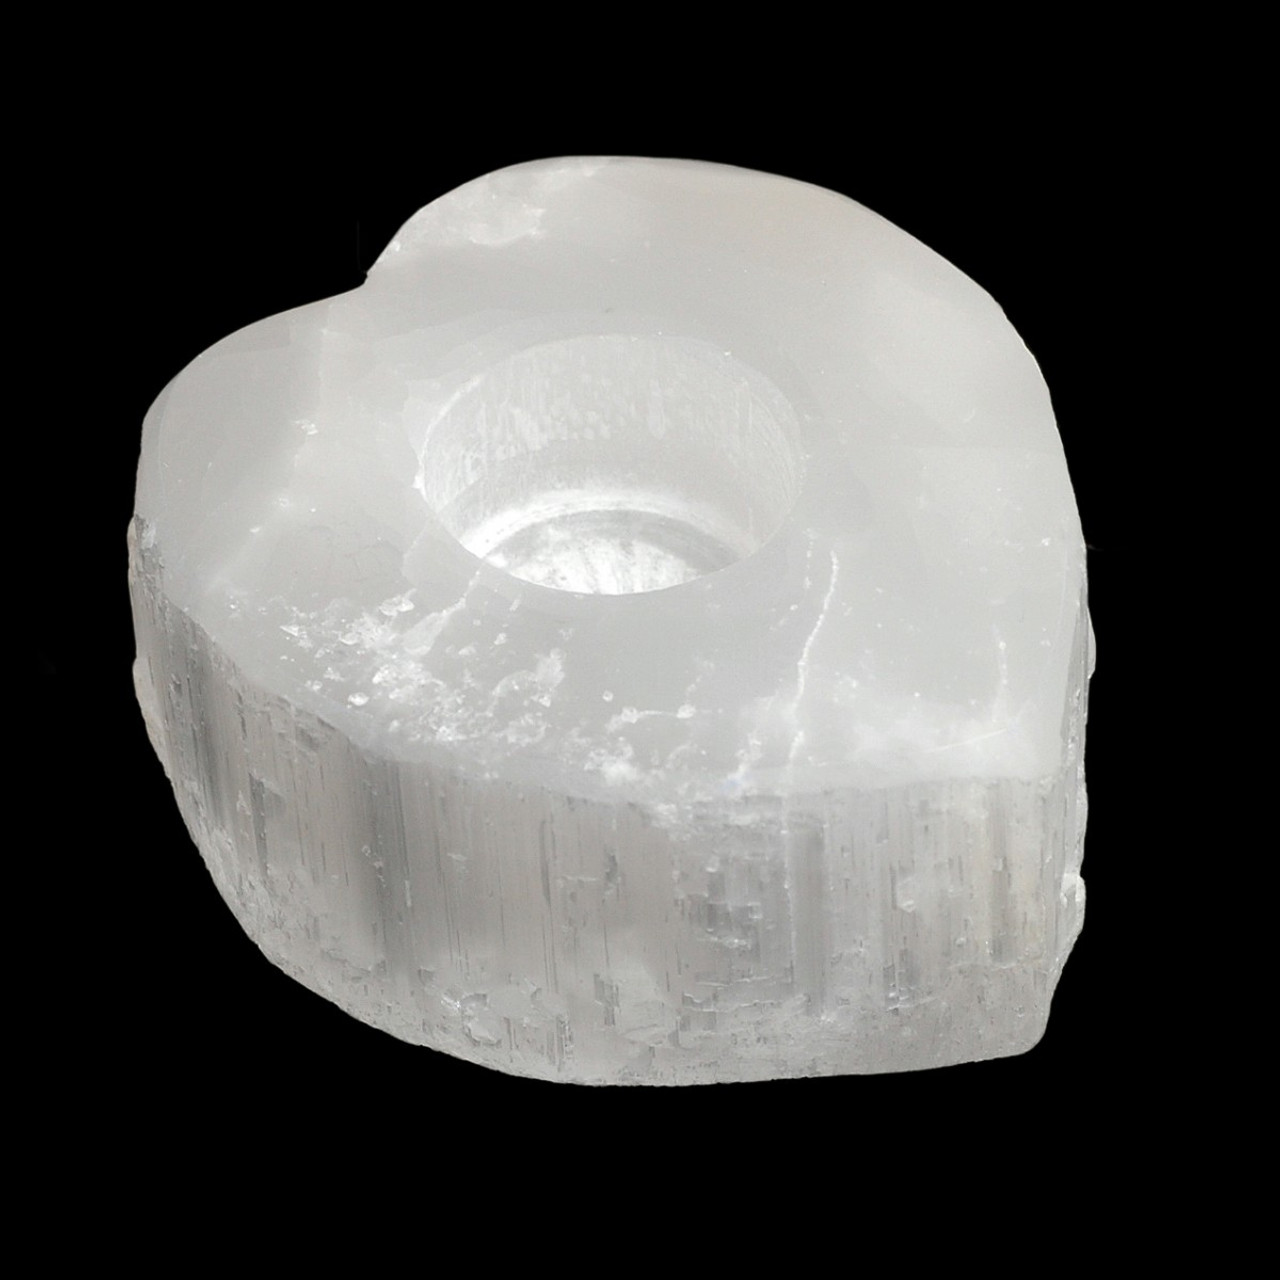 Heart Shaped Selenite Candle Holder (Holds T-light candles)